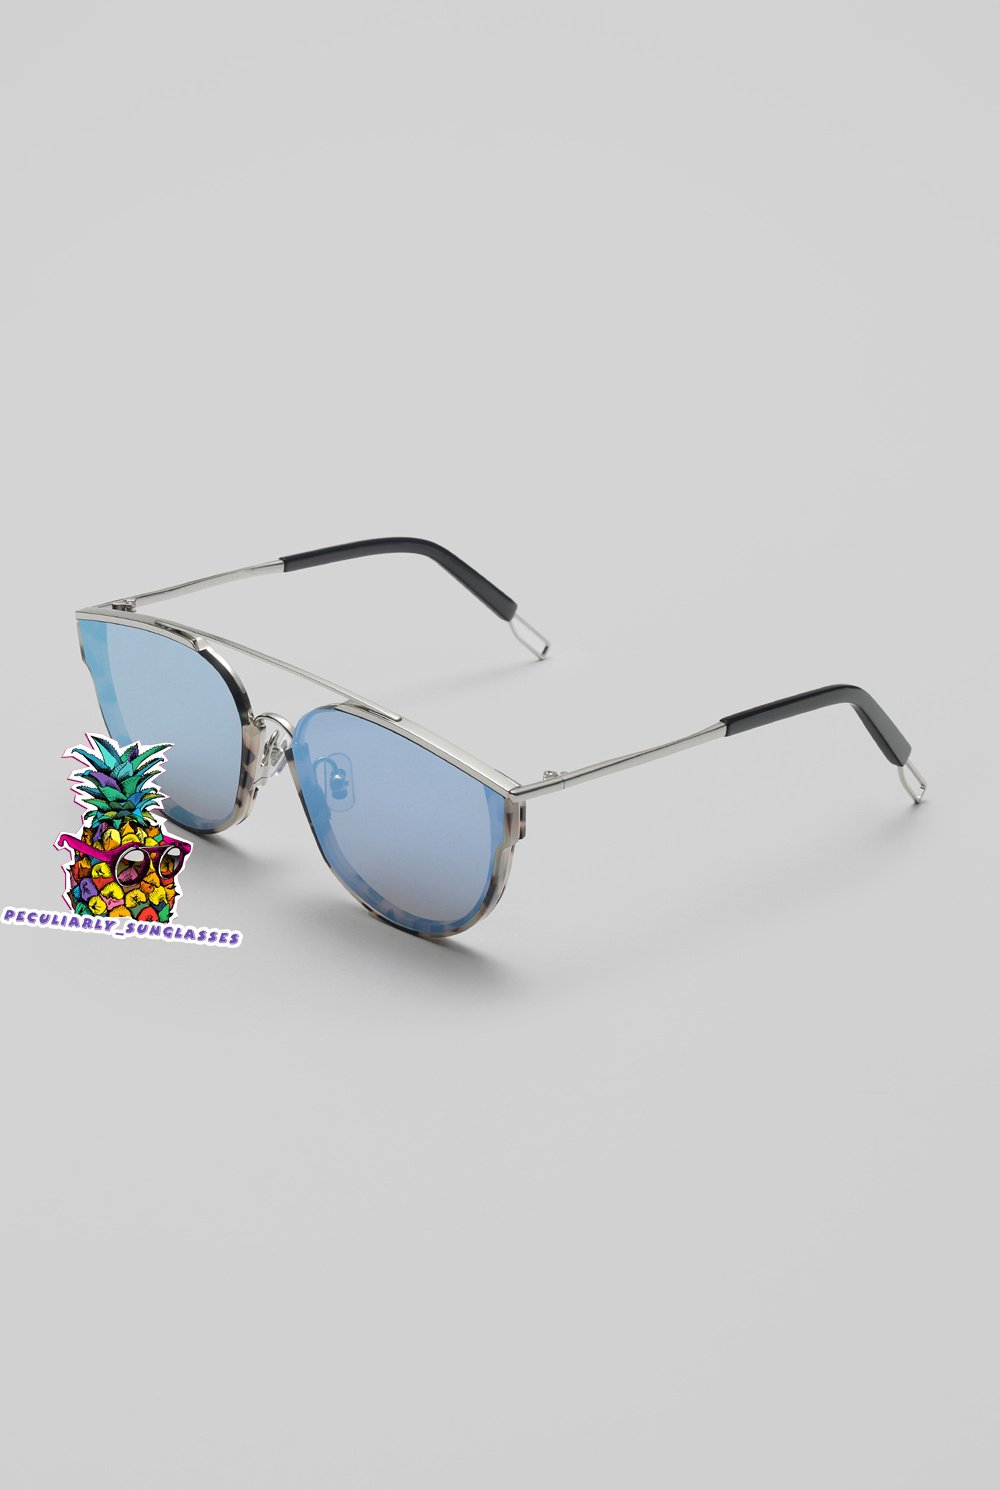 New Gentle man or Women Monster Sunglasses V brand LOE NC1 sunglasses - navy h85smU0d